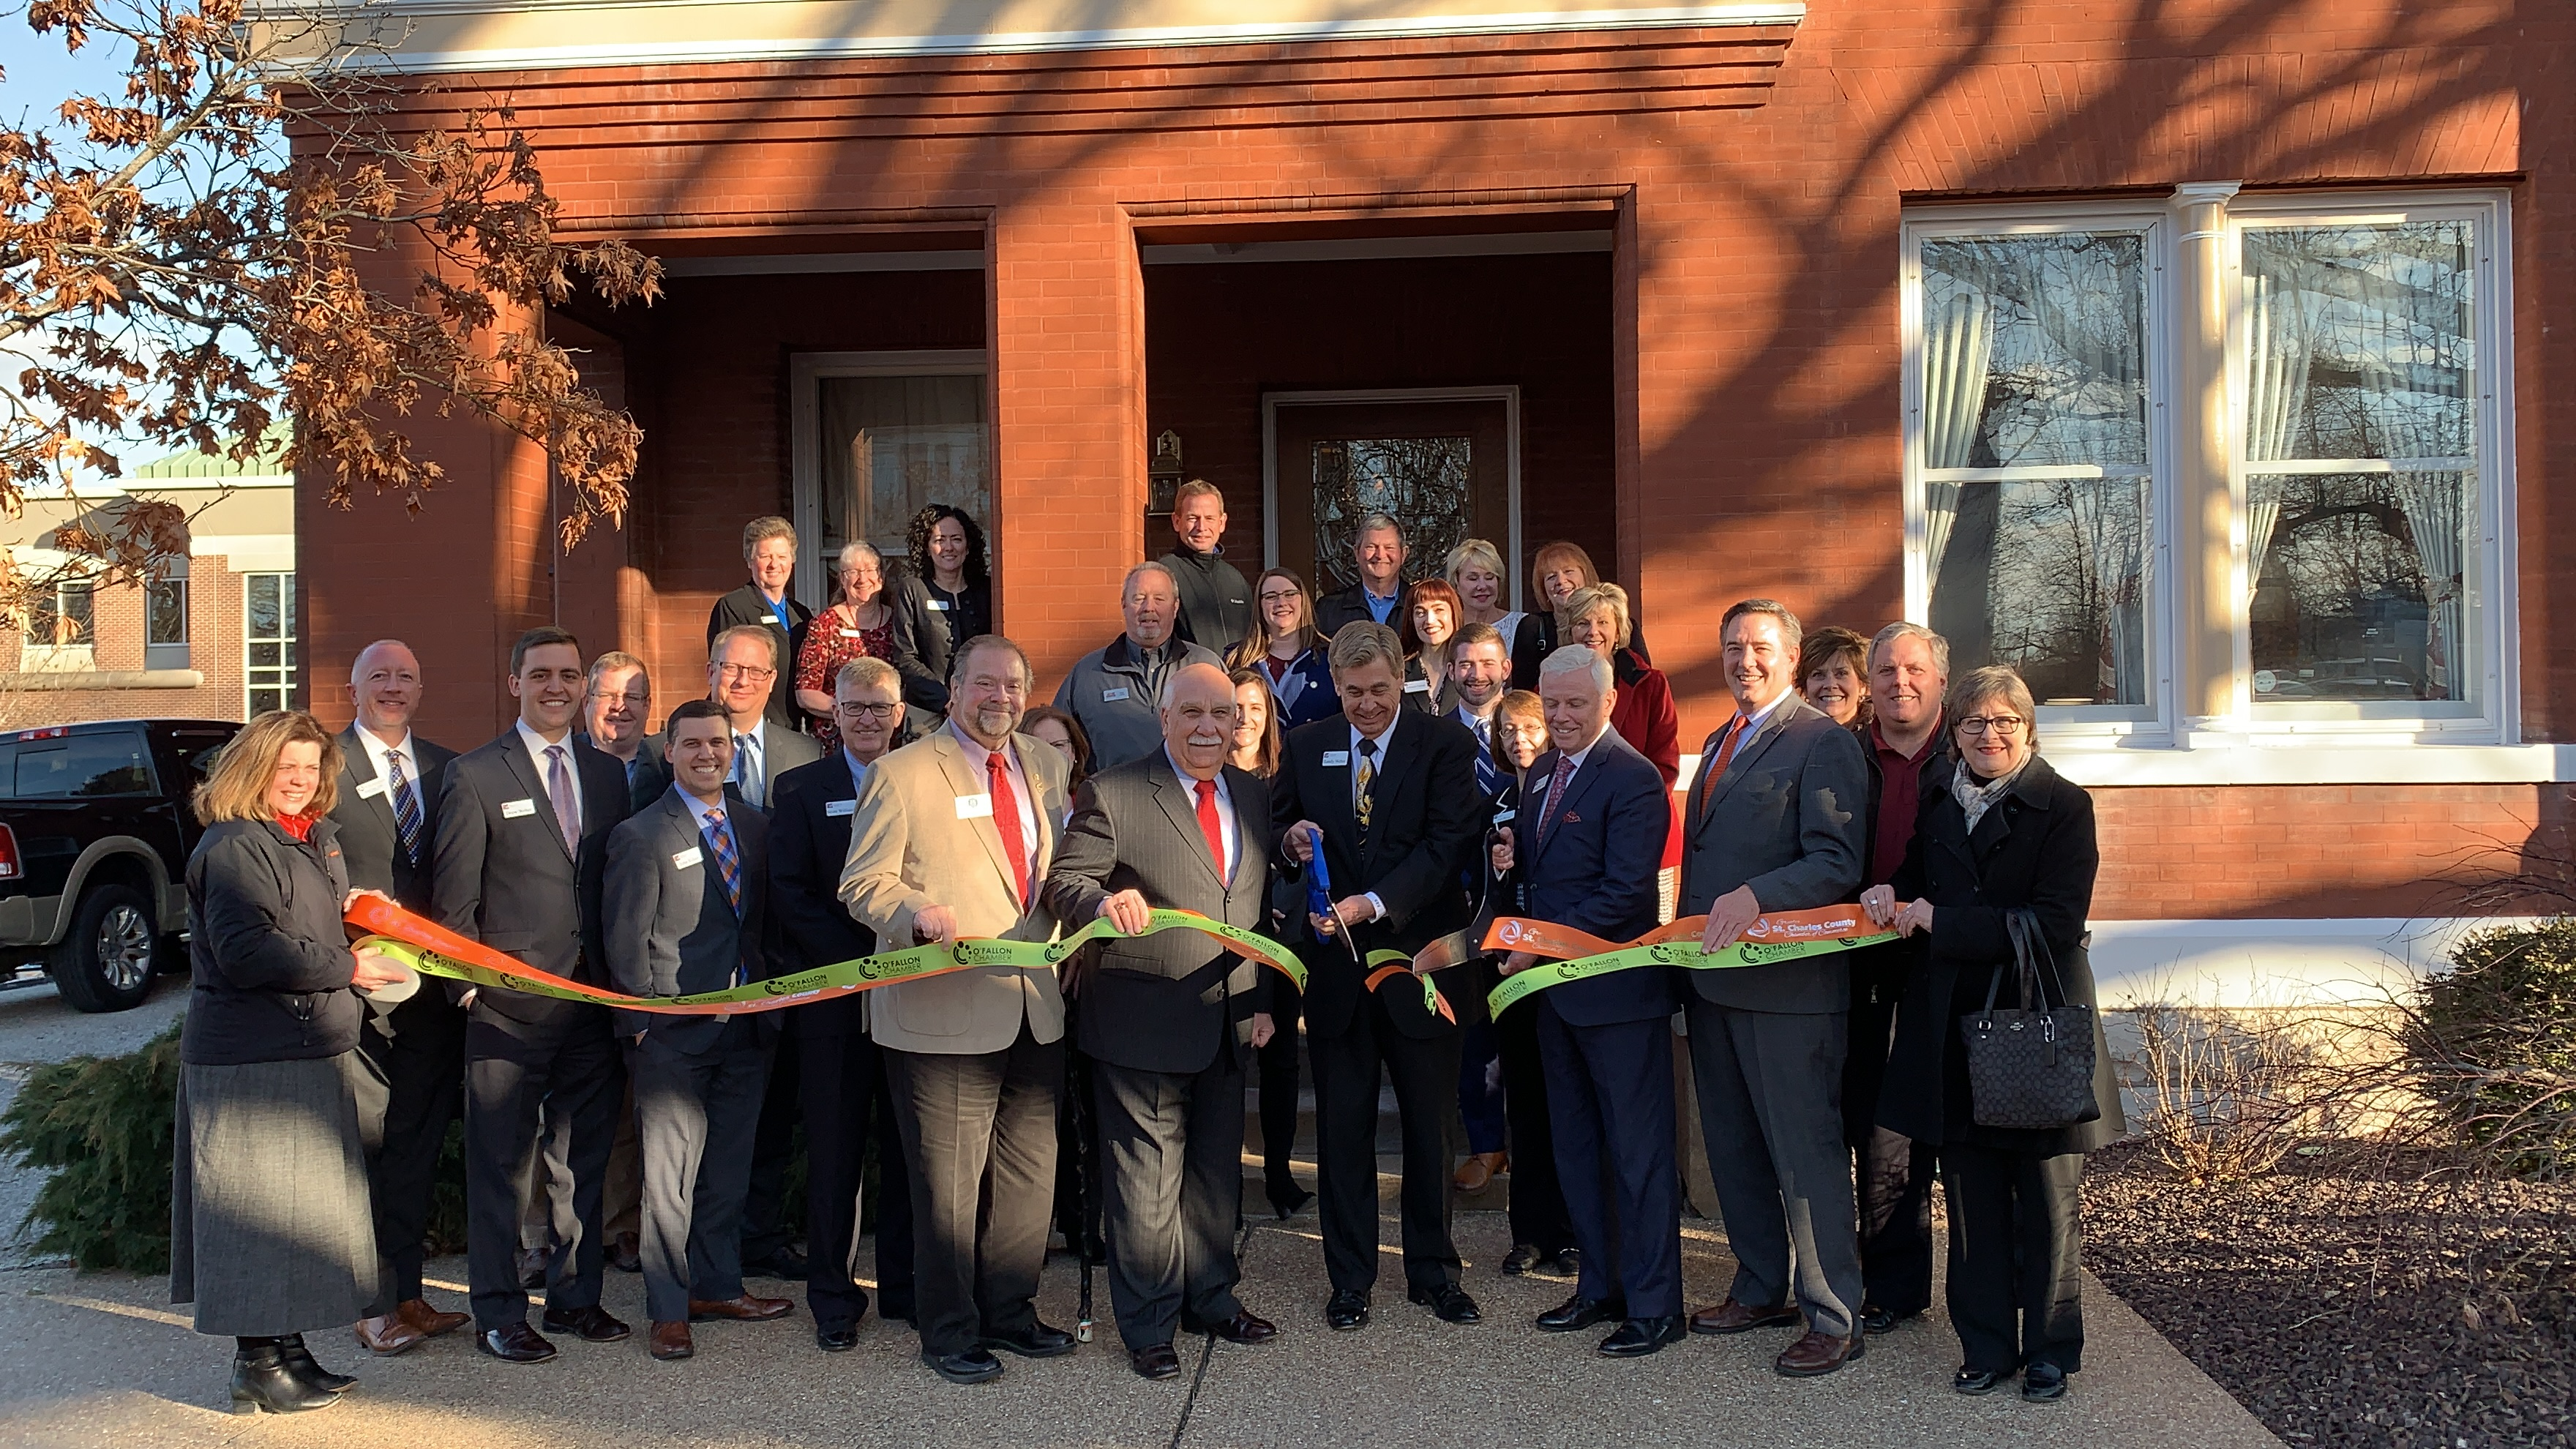 Image for Hamilton Weber LLC Celebrates  20th Anniversary with Ribbon Cutting